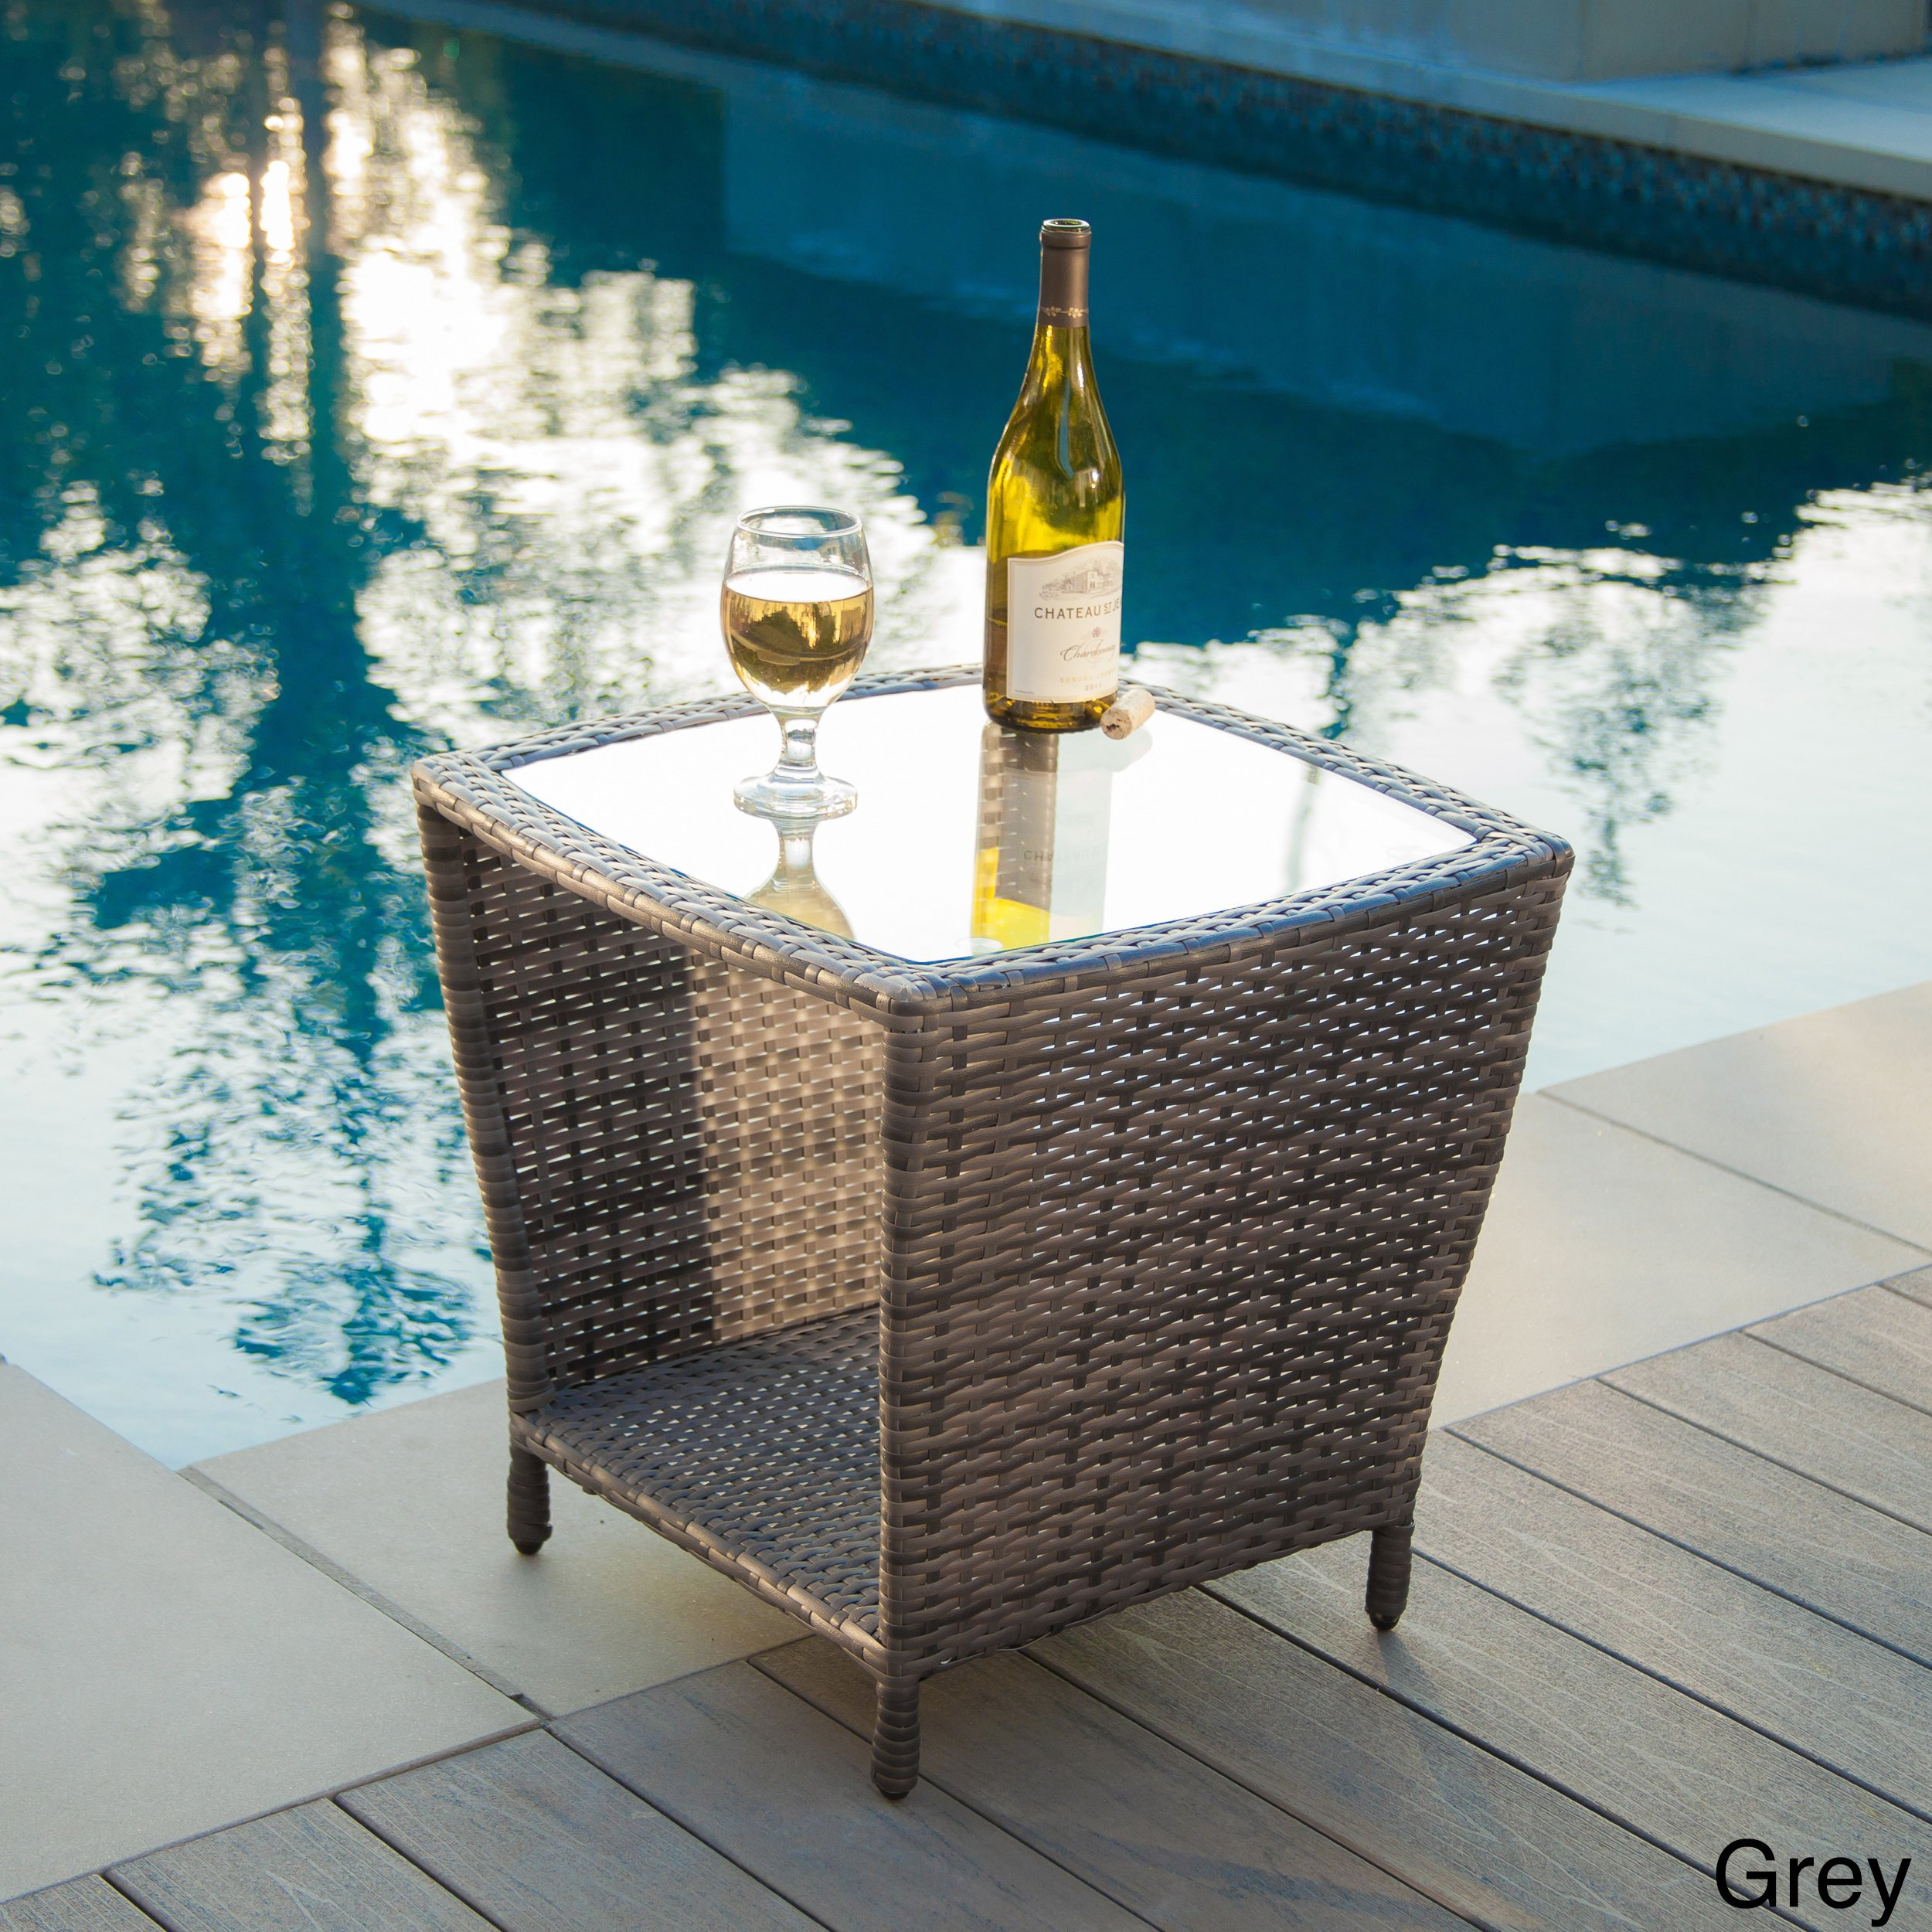 weston outdoor wicker side table with glass top christopher knight home free shipping today gold square coffee circular stacking tables kohls dishes industrial lamp storage west